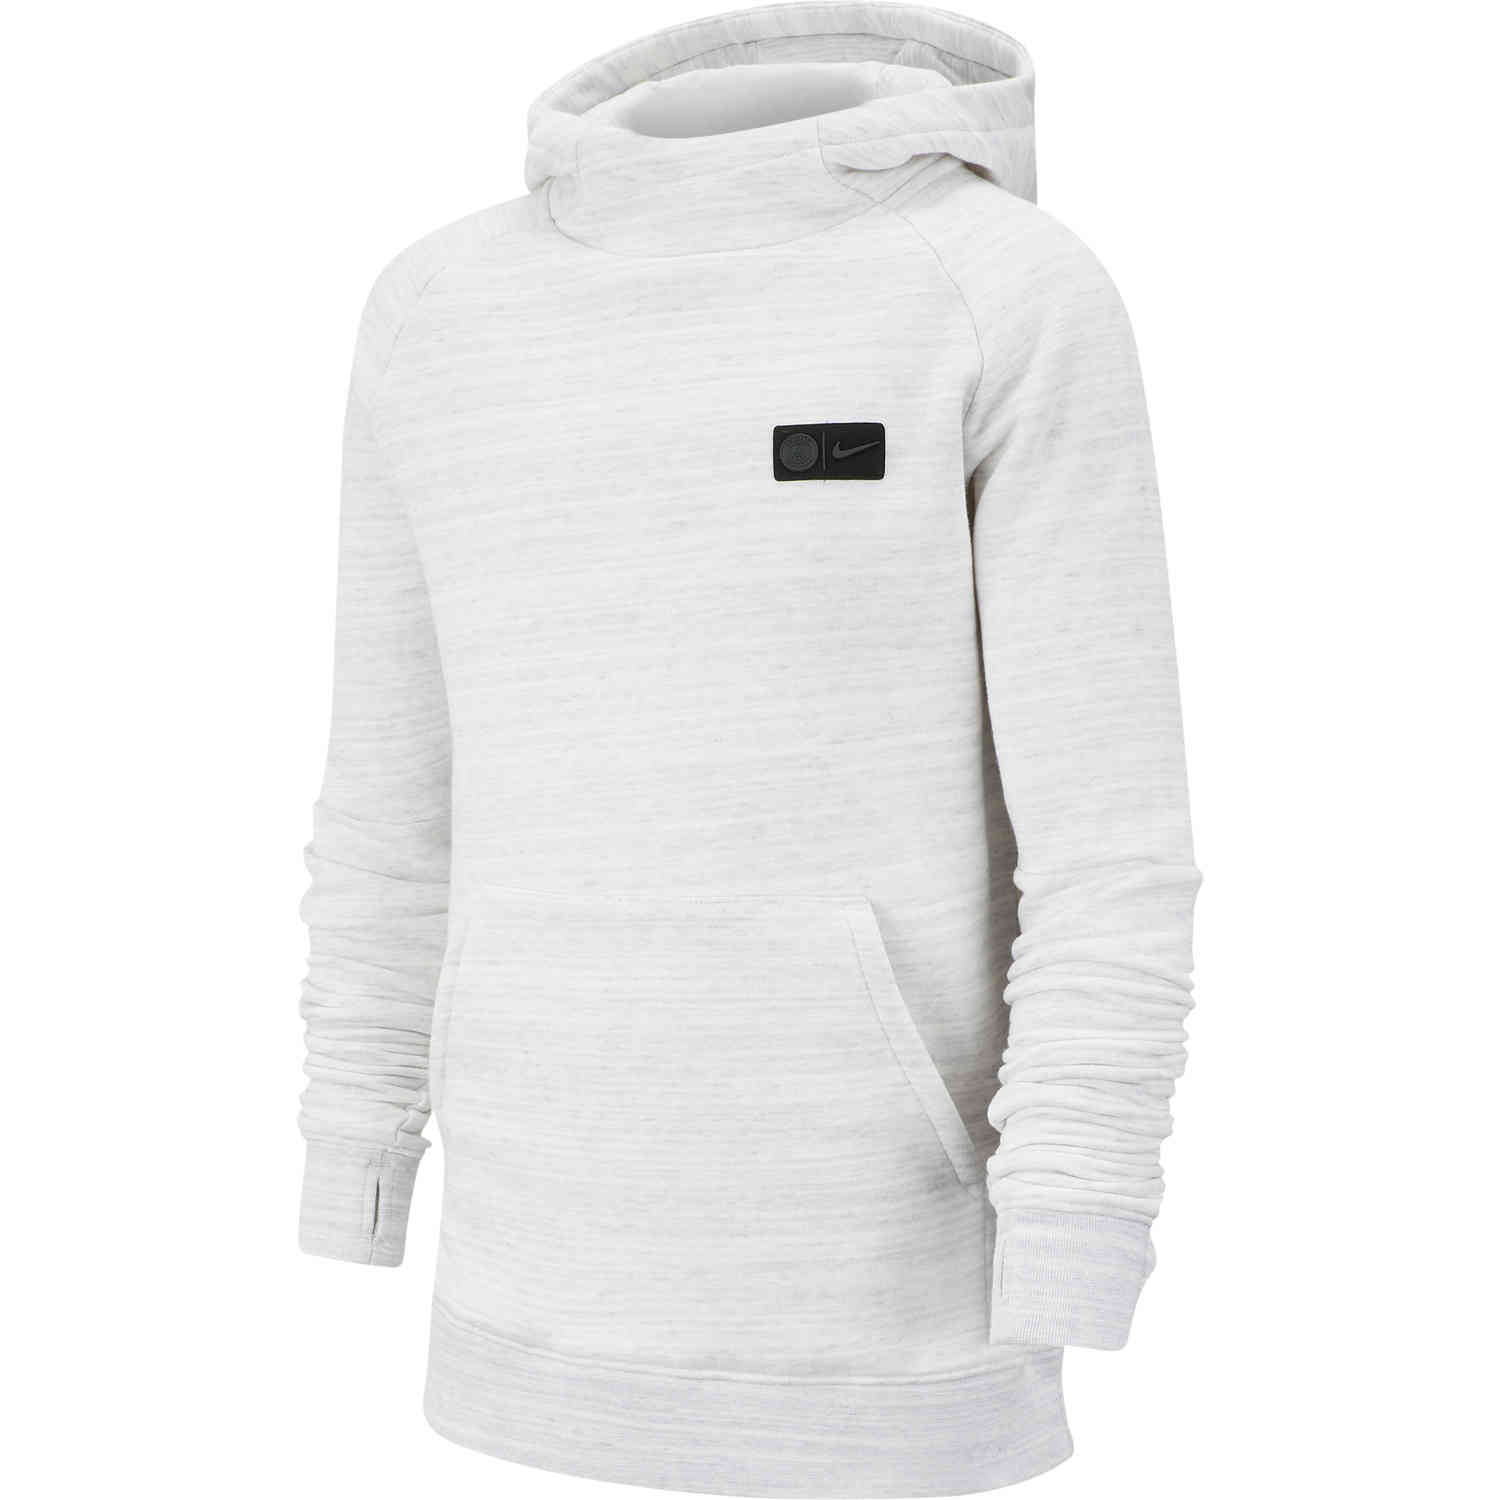 conductor Empuje hacia abajo dialecto  Kids Nike PSG Pullover Fleece Hoodie - White & Wolf Grey with ...